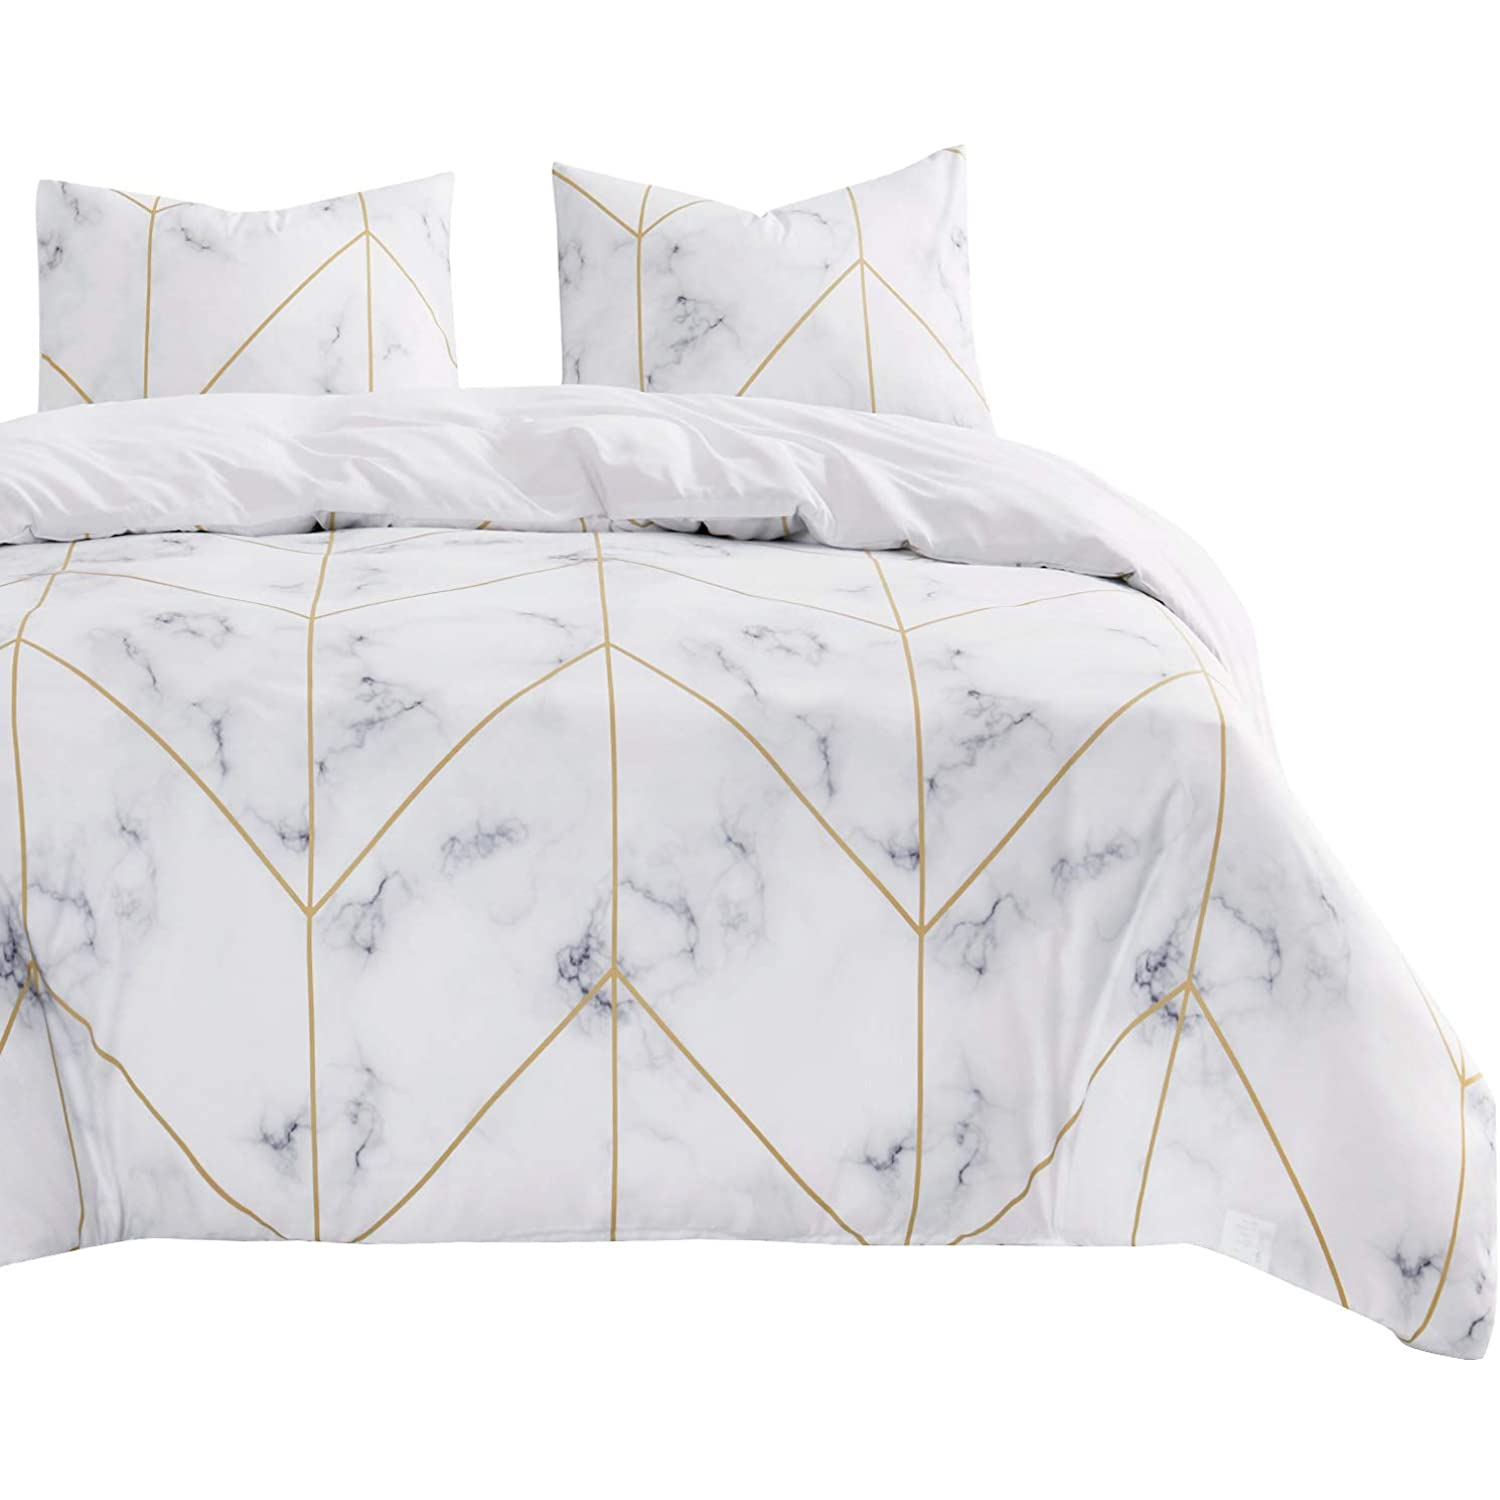 3pcs, California King Size Marble Comforter Set Wake In Cloud Soft Microfiber Bedding Gray Grey Black and White Pattern Printed